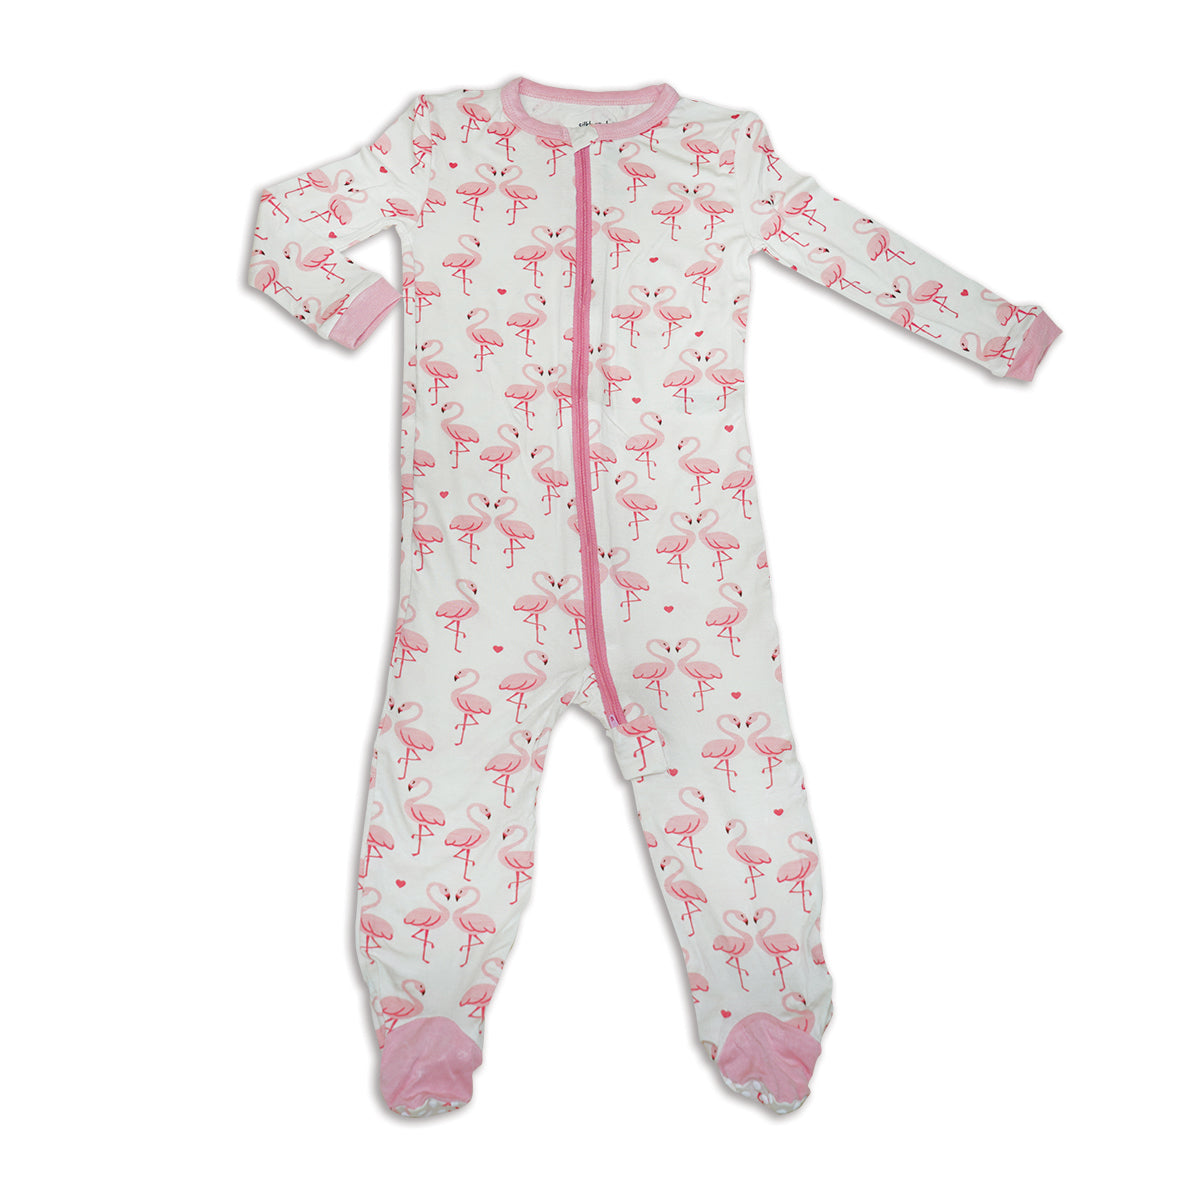 Bamboo Zip up Footed Sleeper (Flamingo Love Print)